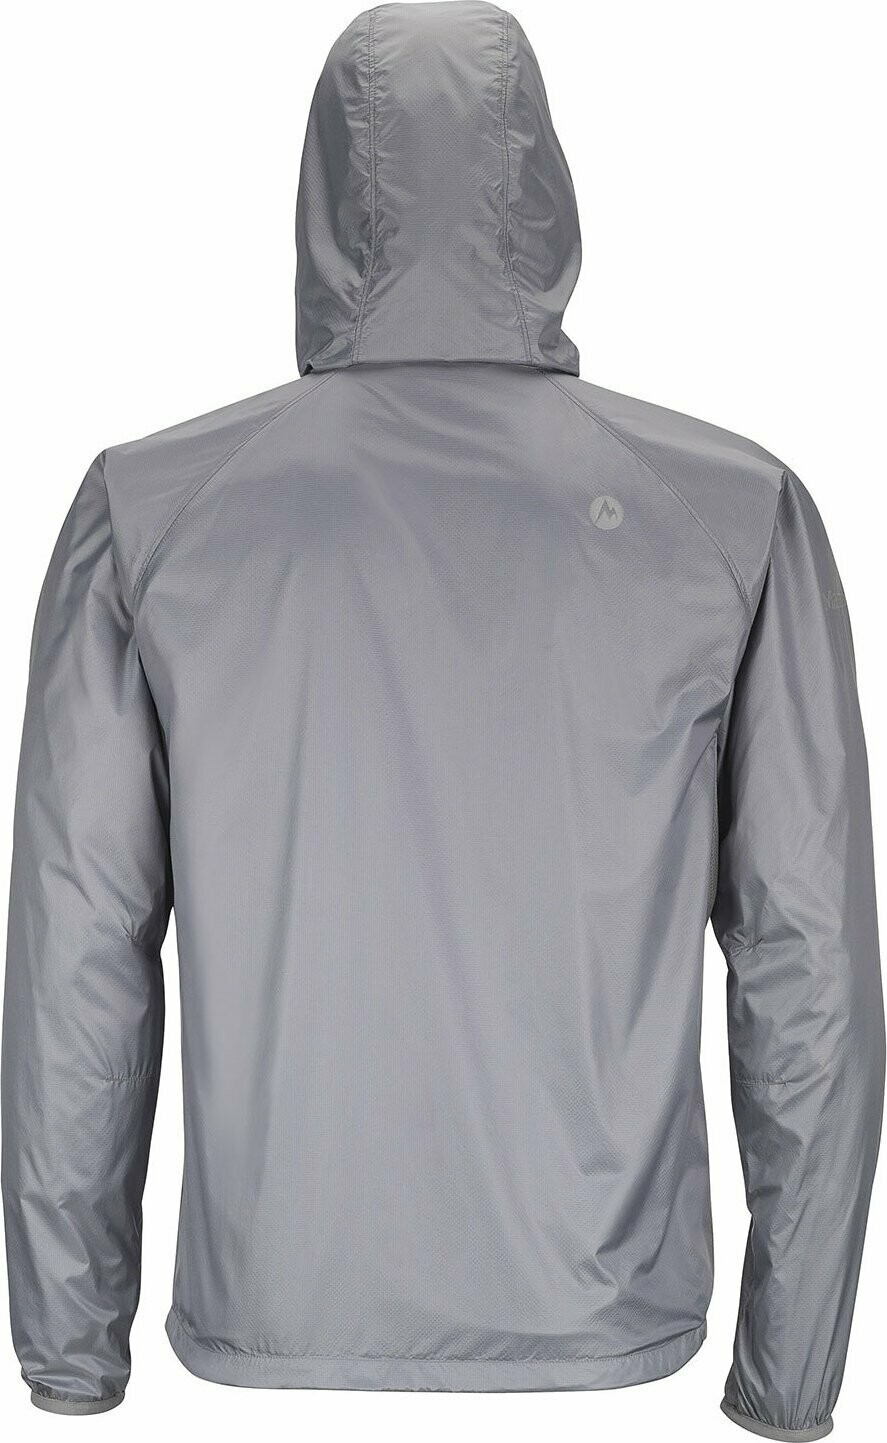 Marmot ETHER DRICLIME HOODY lined wind jacket - MEN'S, XLarge